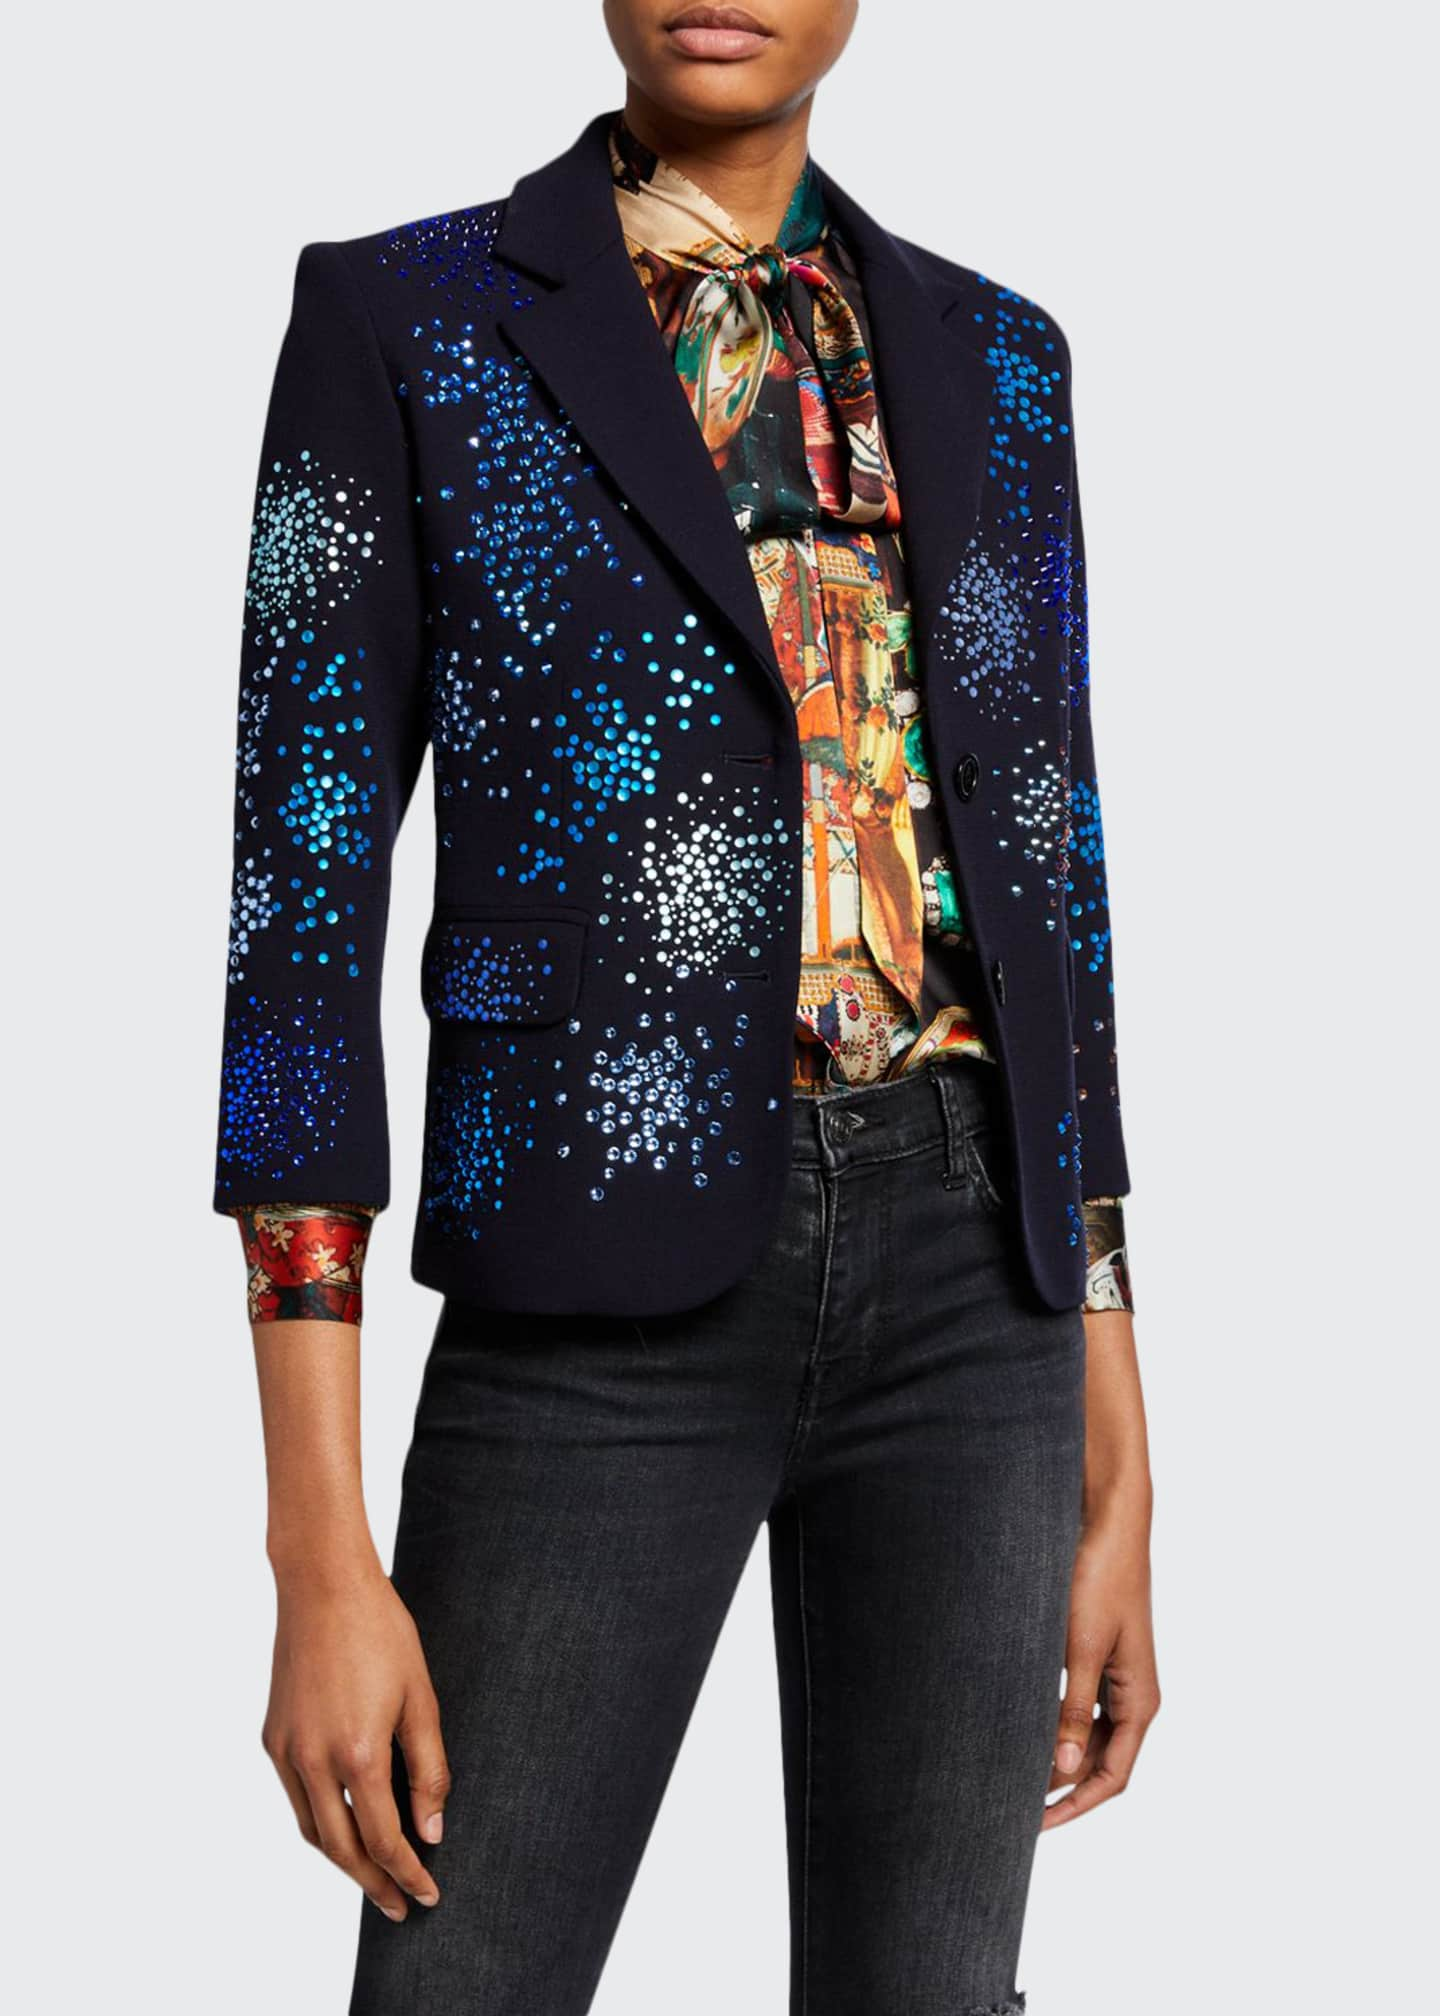 Libertine Mo' Monet Mo' Problems Sequin Embellished Blazer